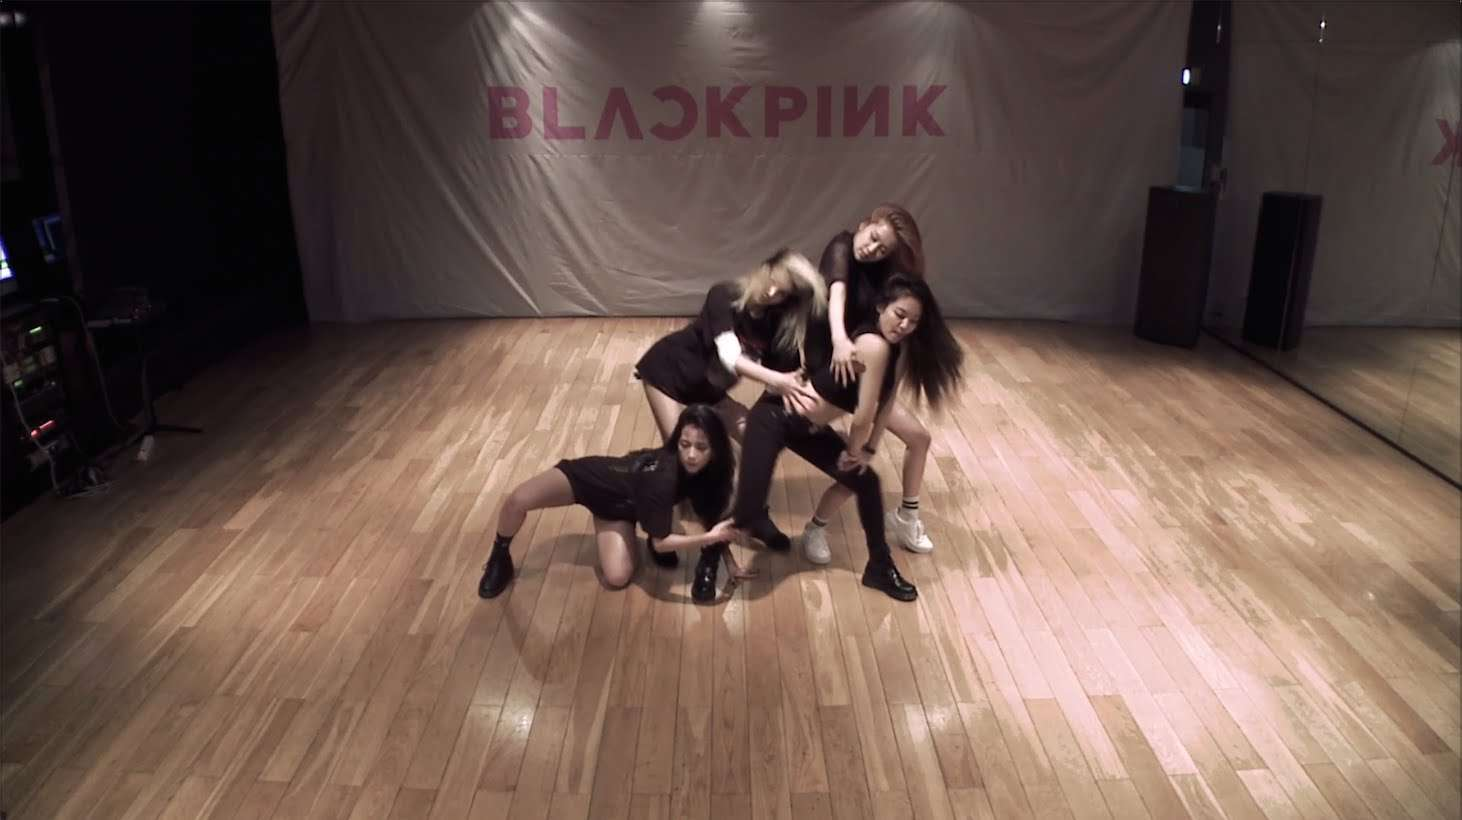 BLACKPINK - '붐바야(BOOMBAYAH)' DANCE PRACTICE VIDEO - YouTube